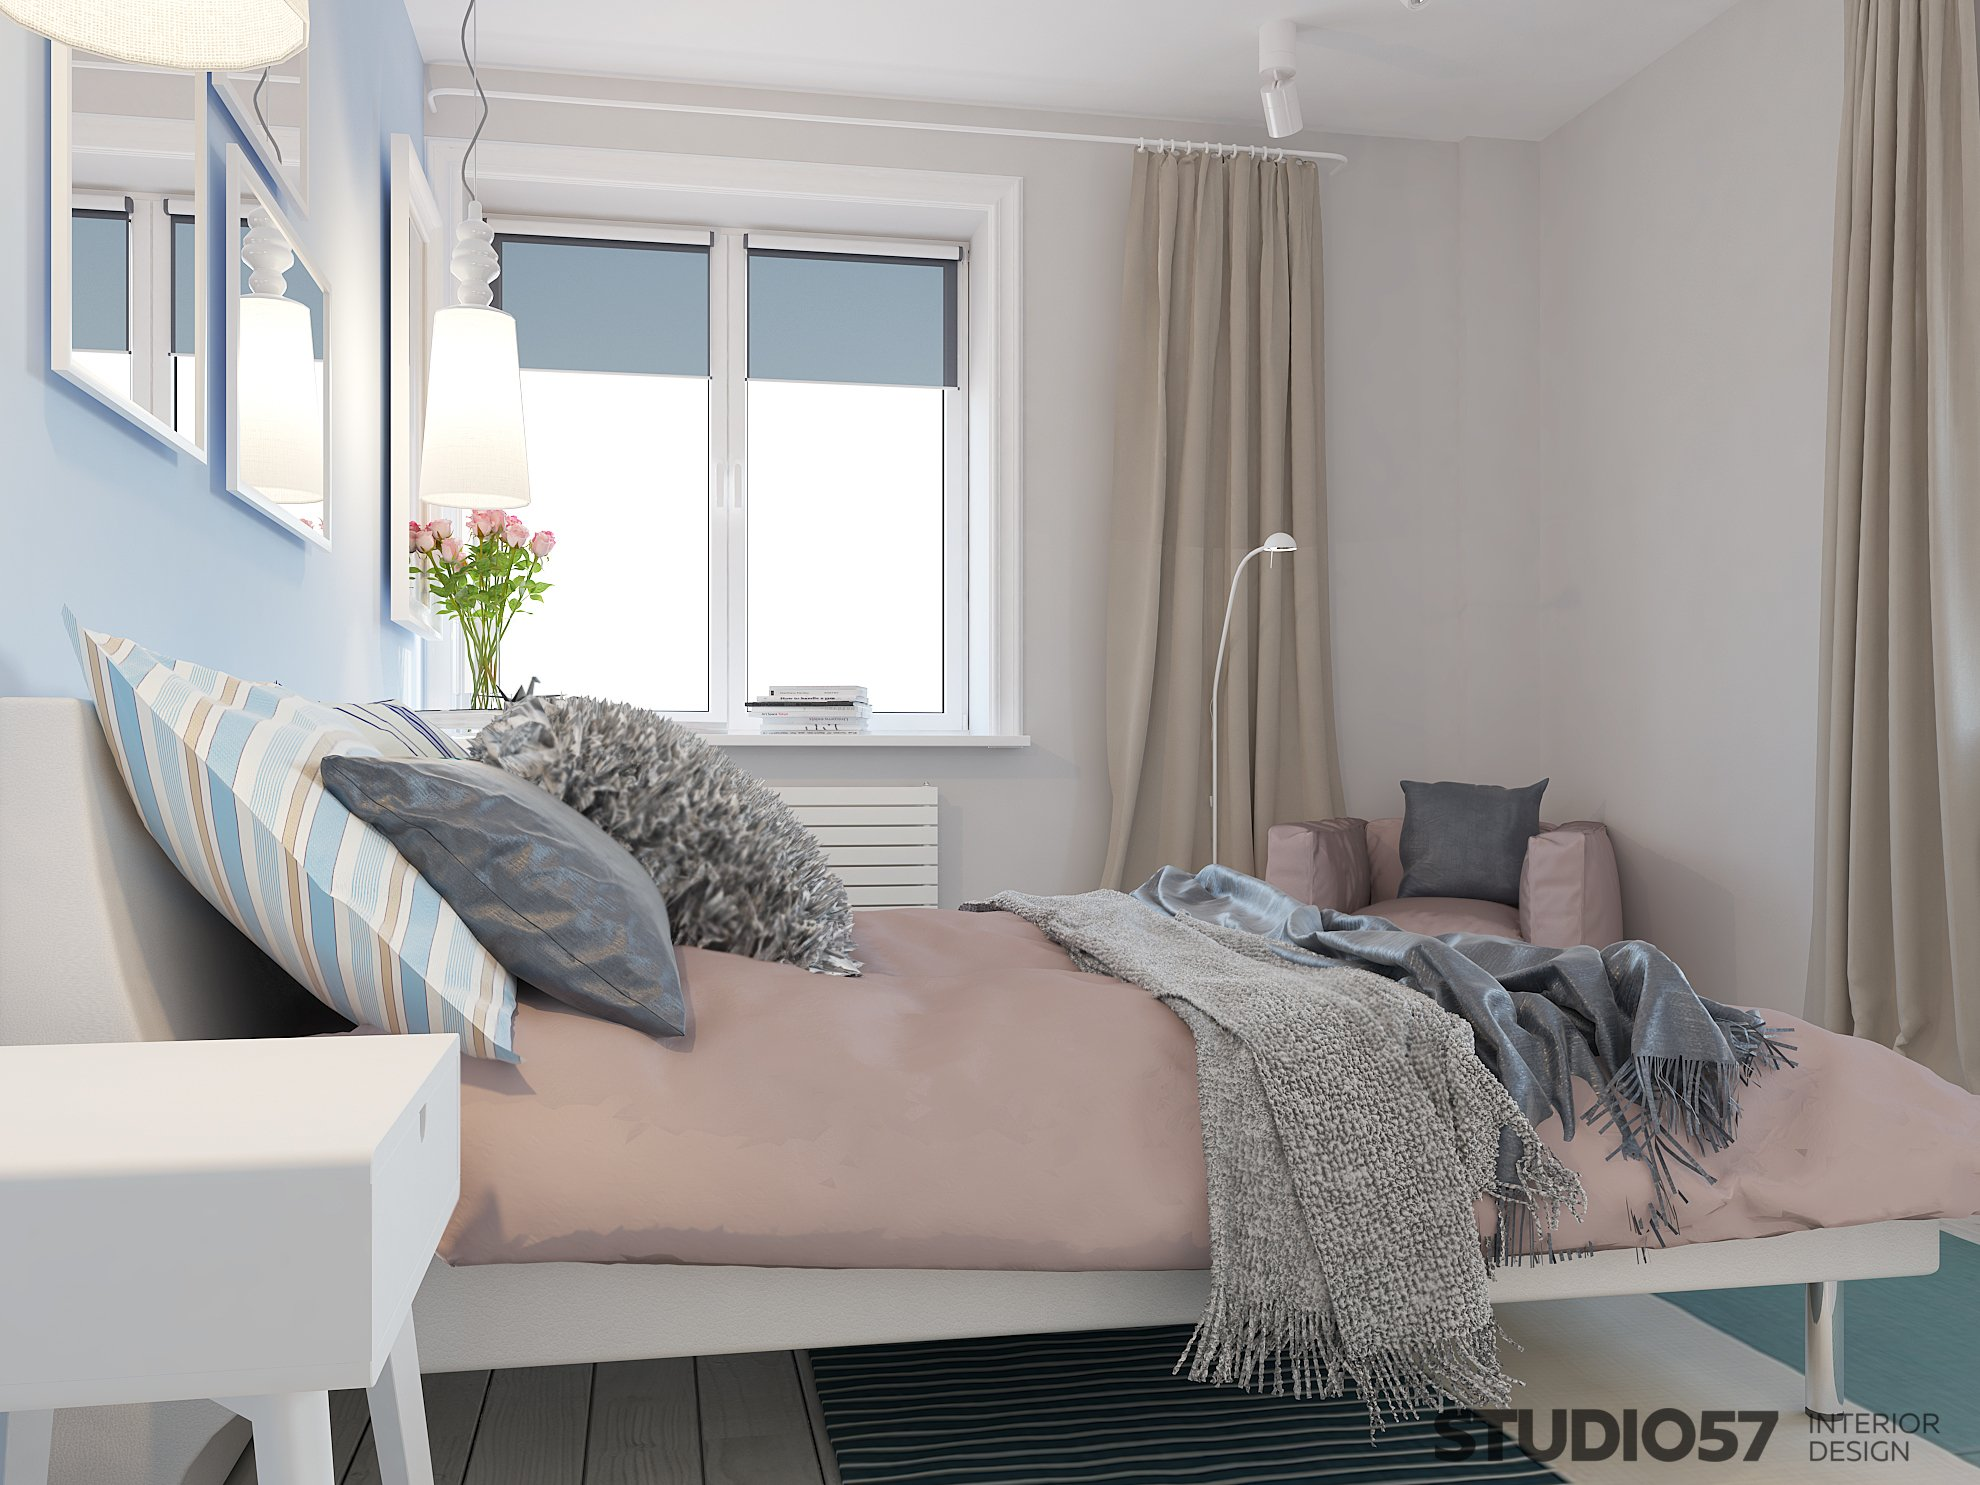 Interior of a fashionable bedroom photo